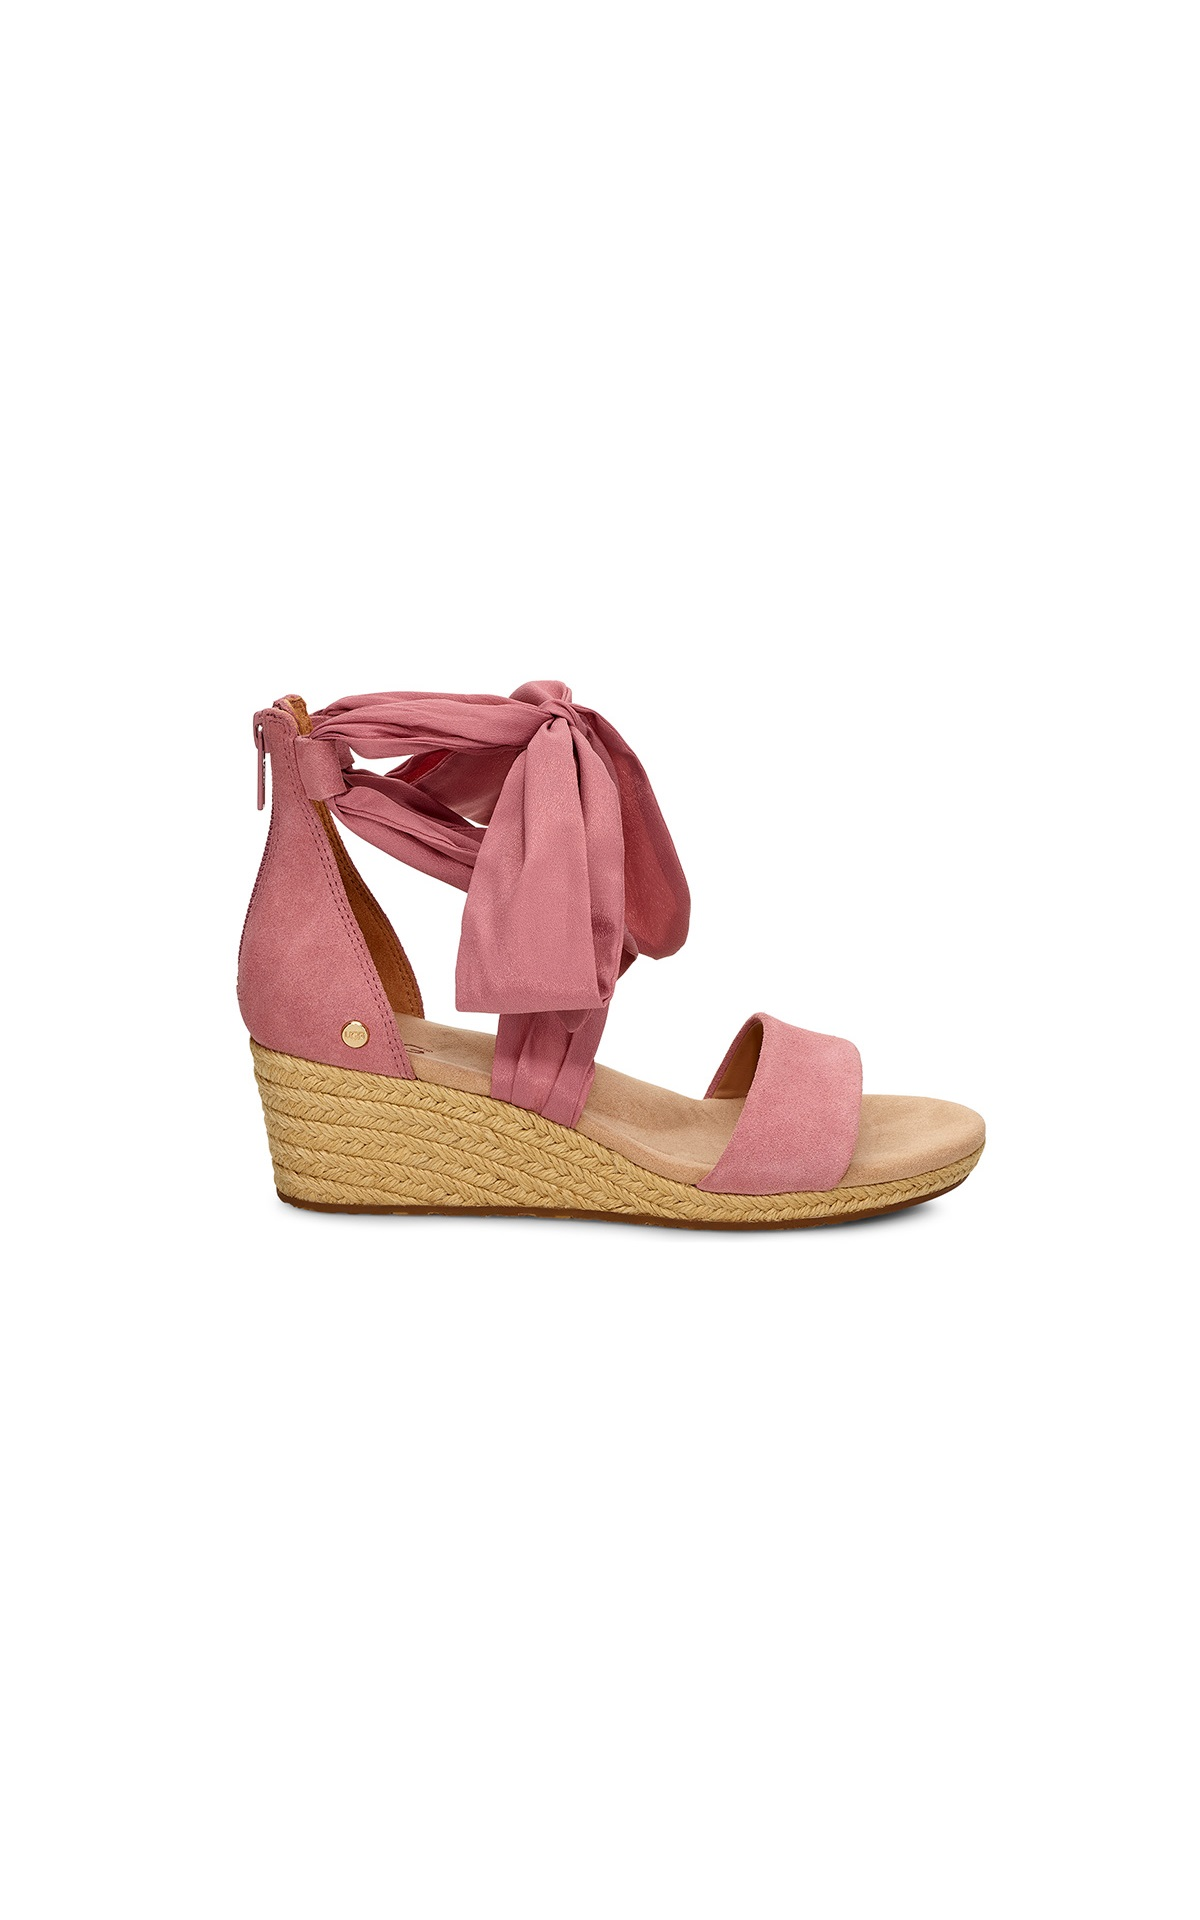 Pink espadrilles from UGG